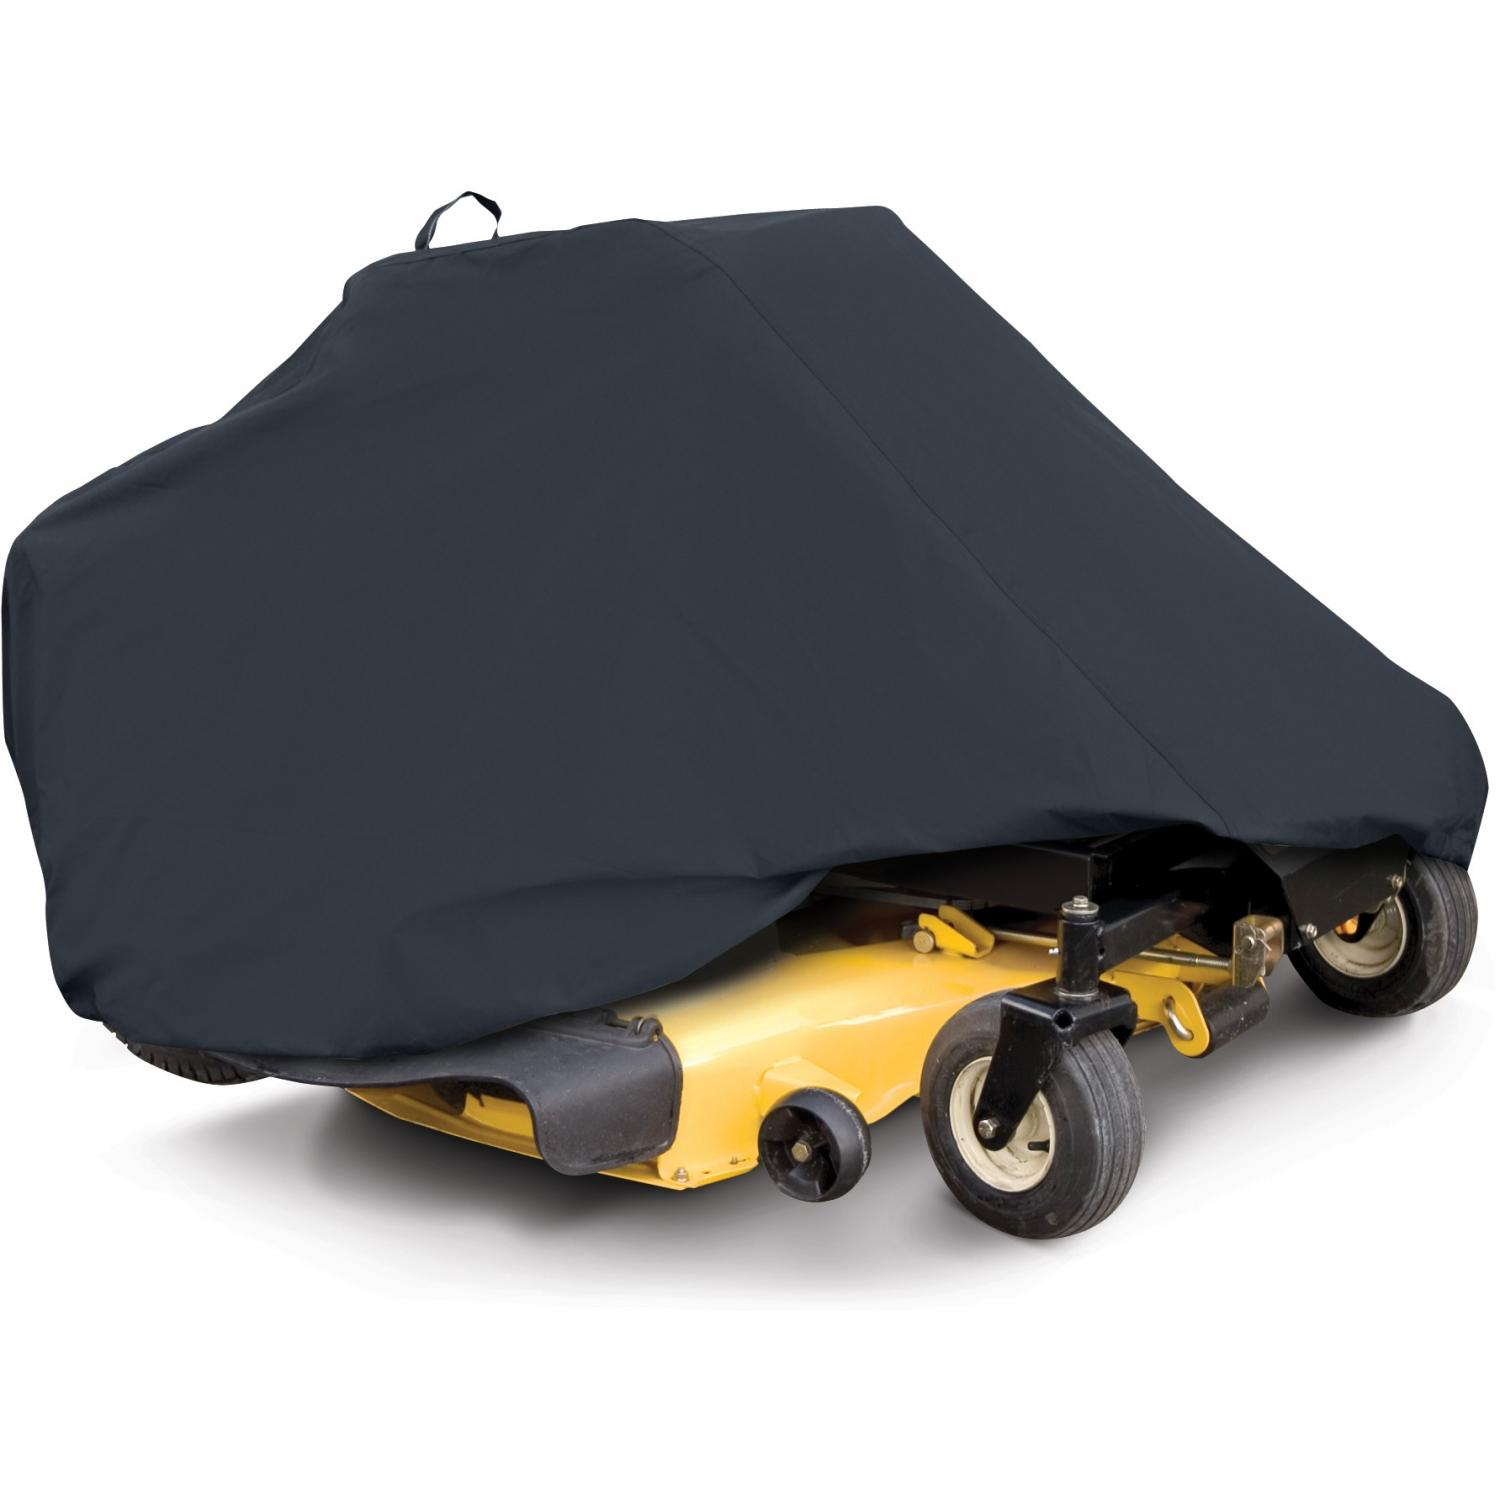 Classic Accessories Zero Turn Mower Cover - Black